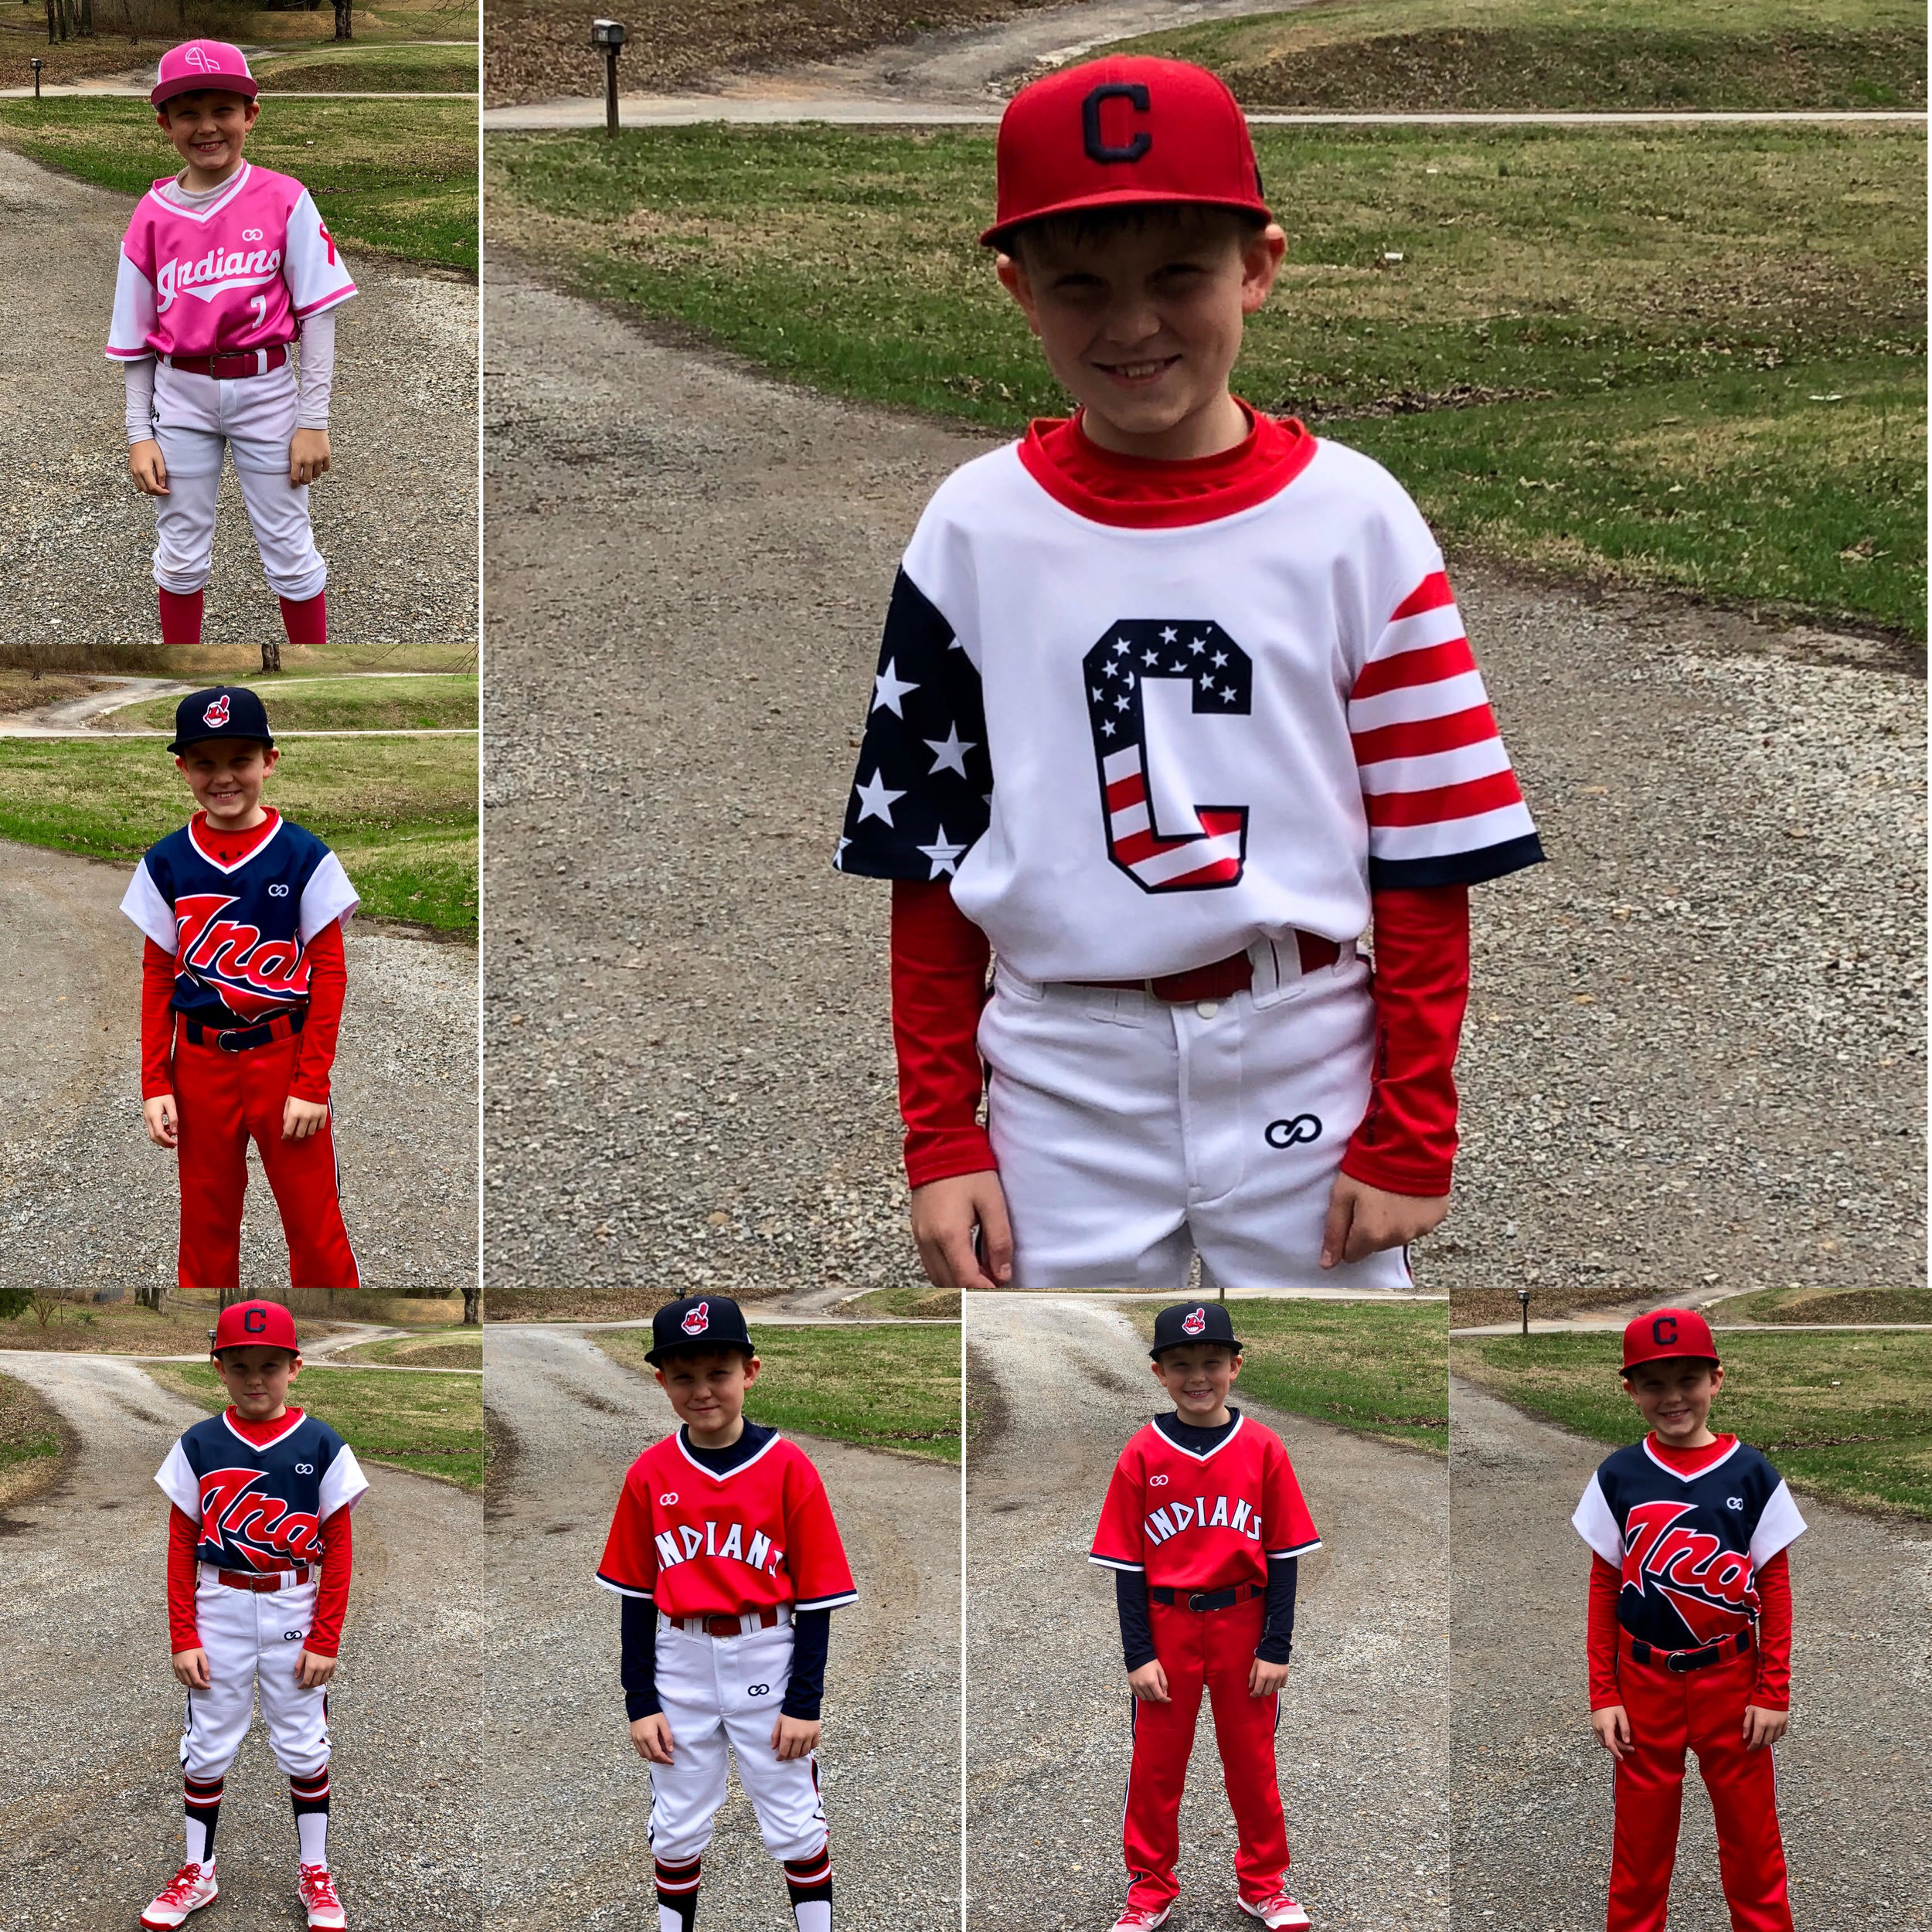 INDIANS Red White Navy Blue Pink Black Baseball Uniforms, Jerseys Shirts, and Pants